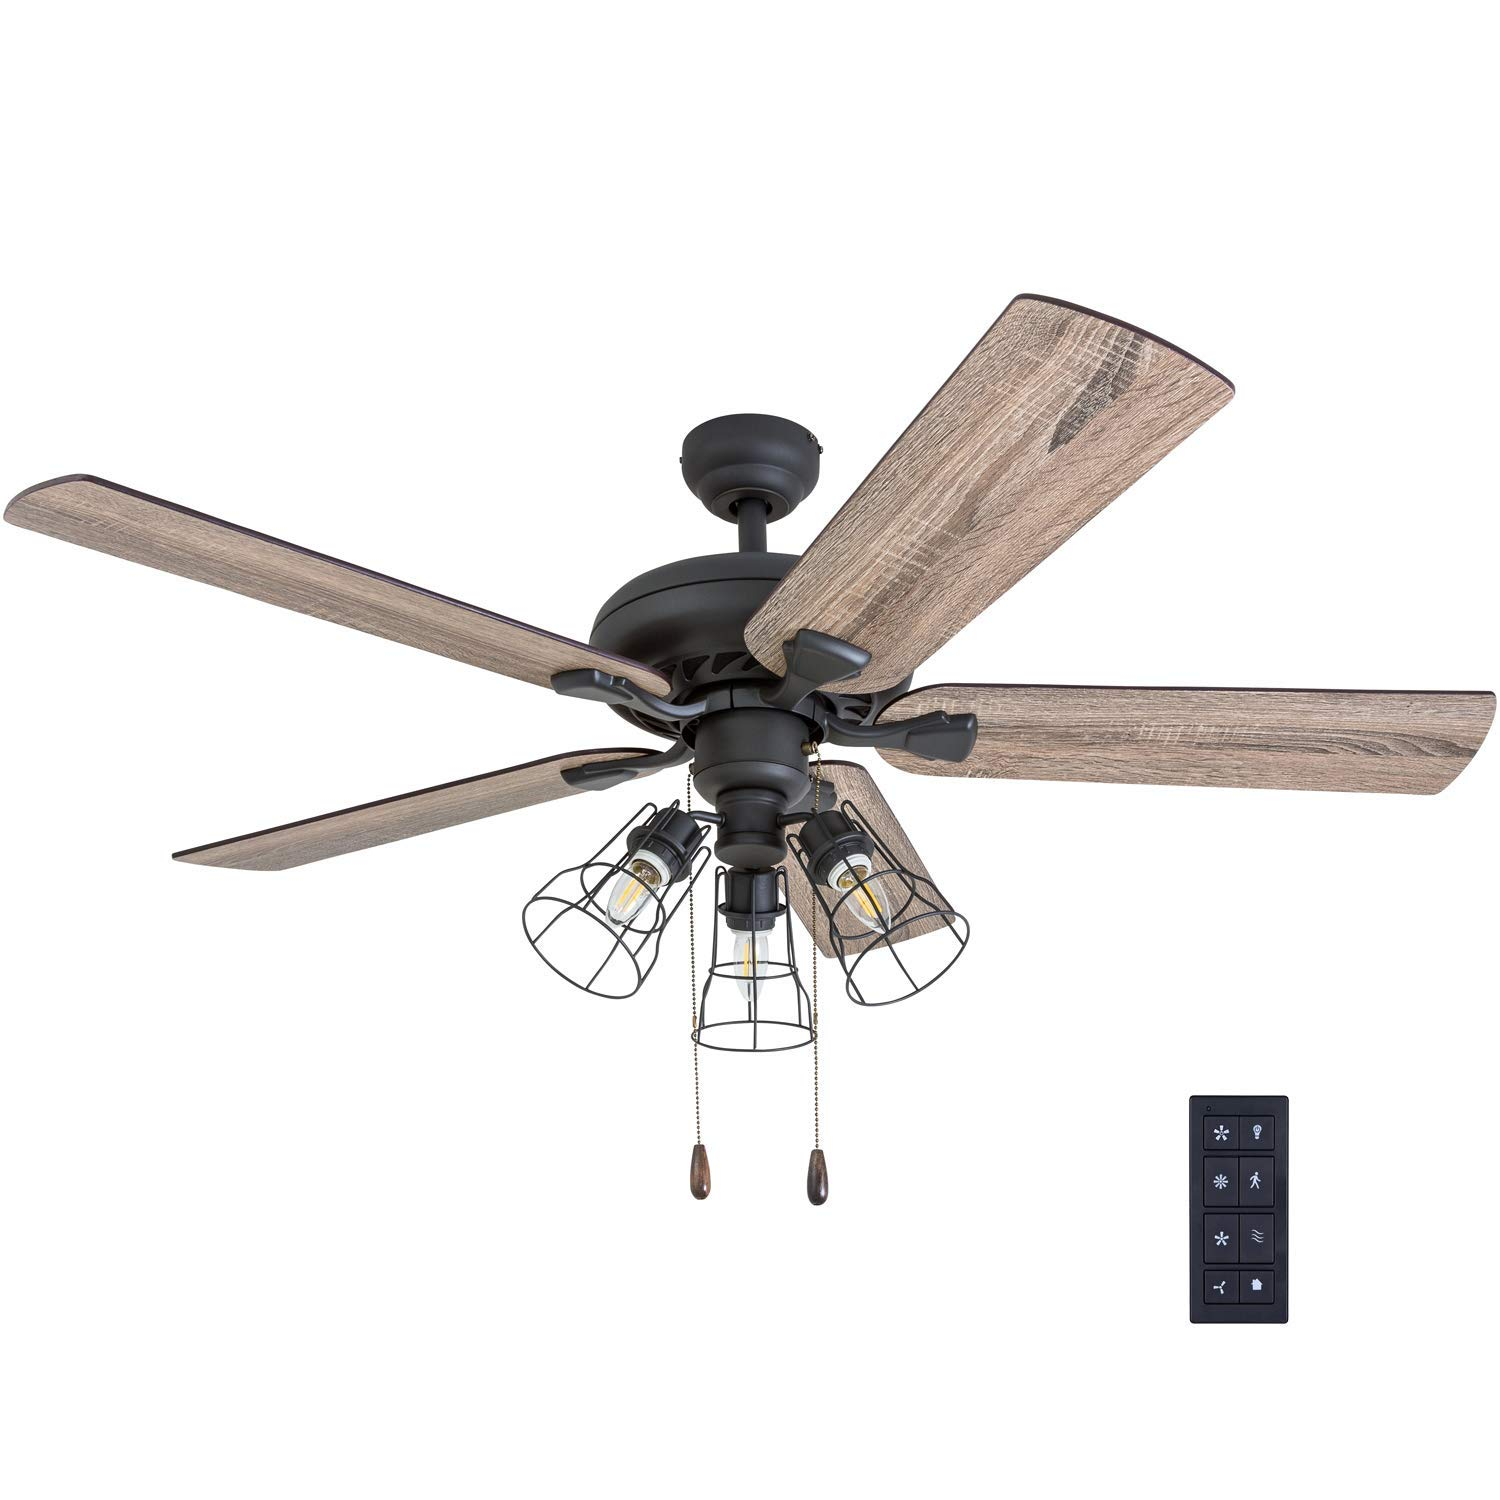 Prominence Home 50745 01 Lincoln Woods Farmhouse Ceiling Fan 3 Speed Remote 52 Barnwood Tumbleweed Aged Bronze Amazon Com